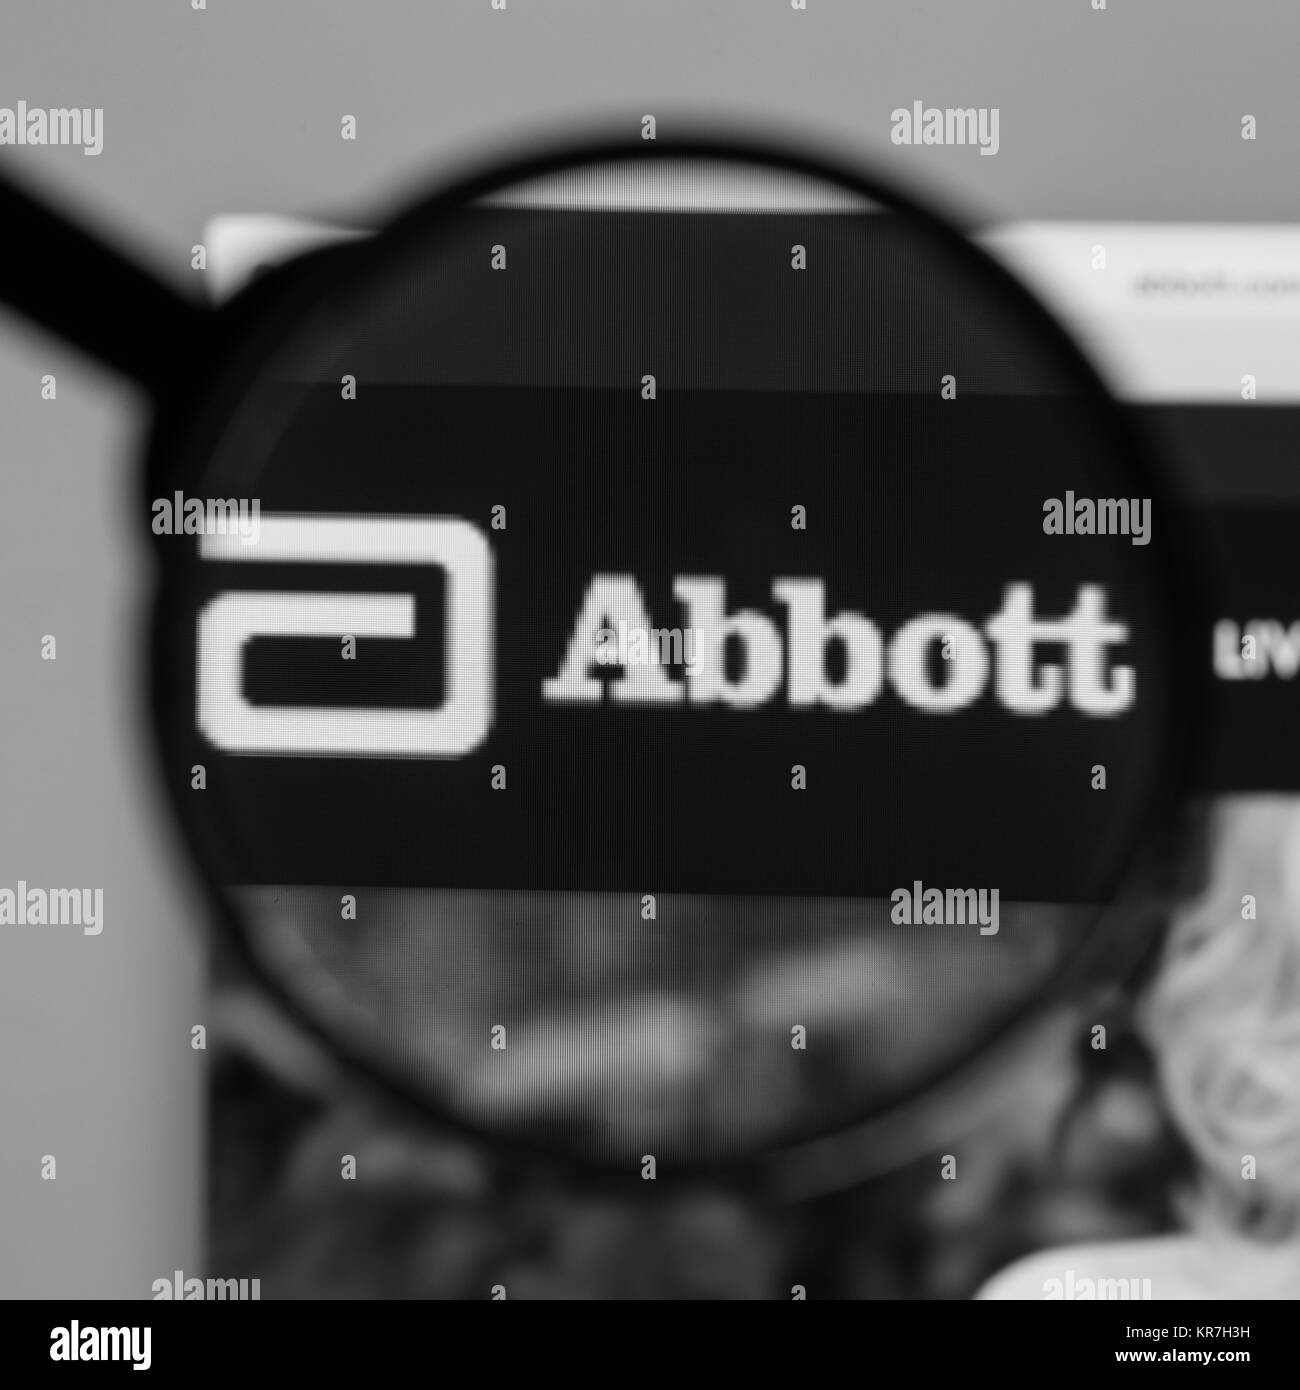 Nyse black and white stock photos images alamy milan italy august 10 2017 abbott website homepage it is an buycottarizona Gallery